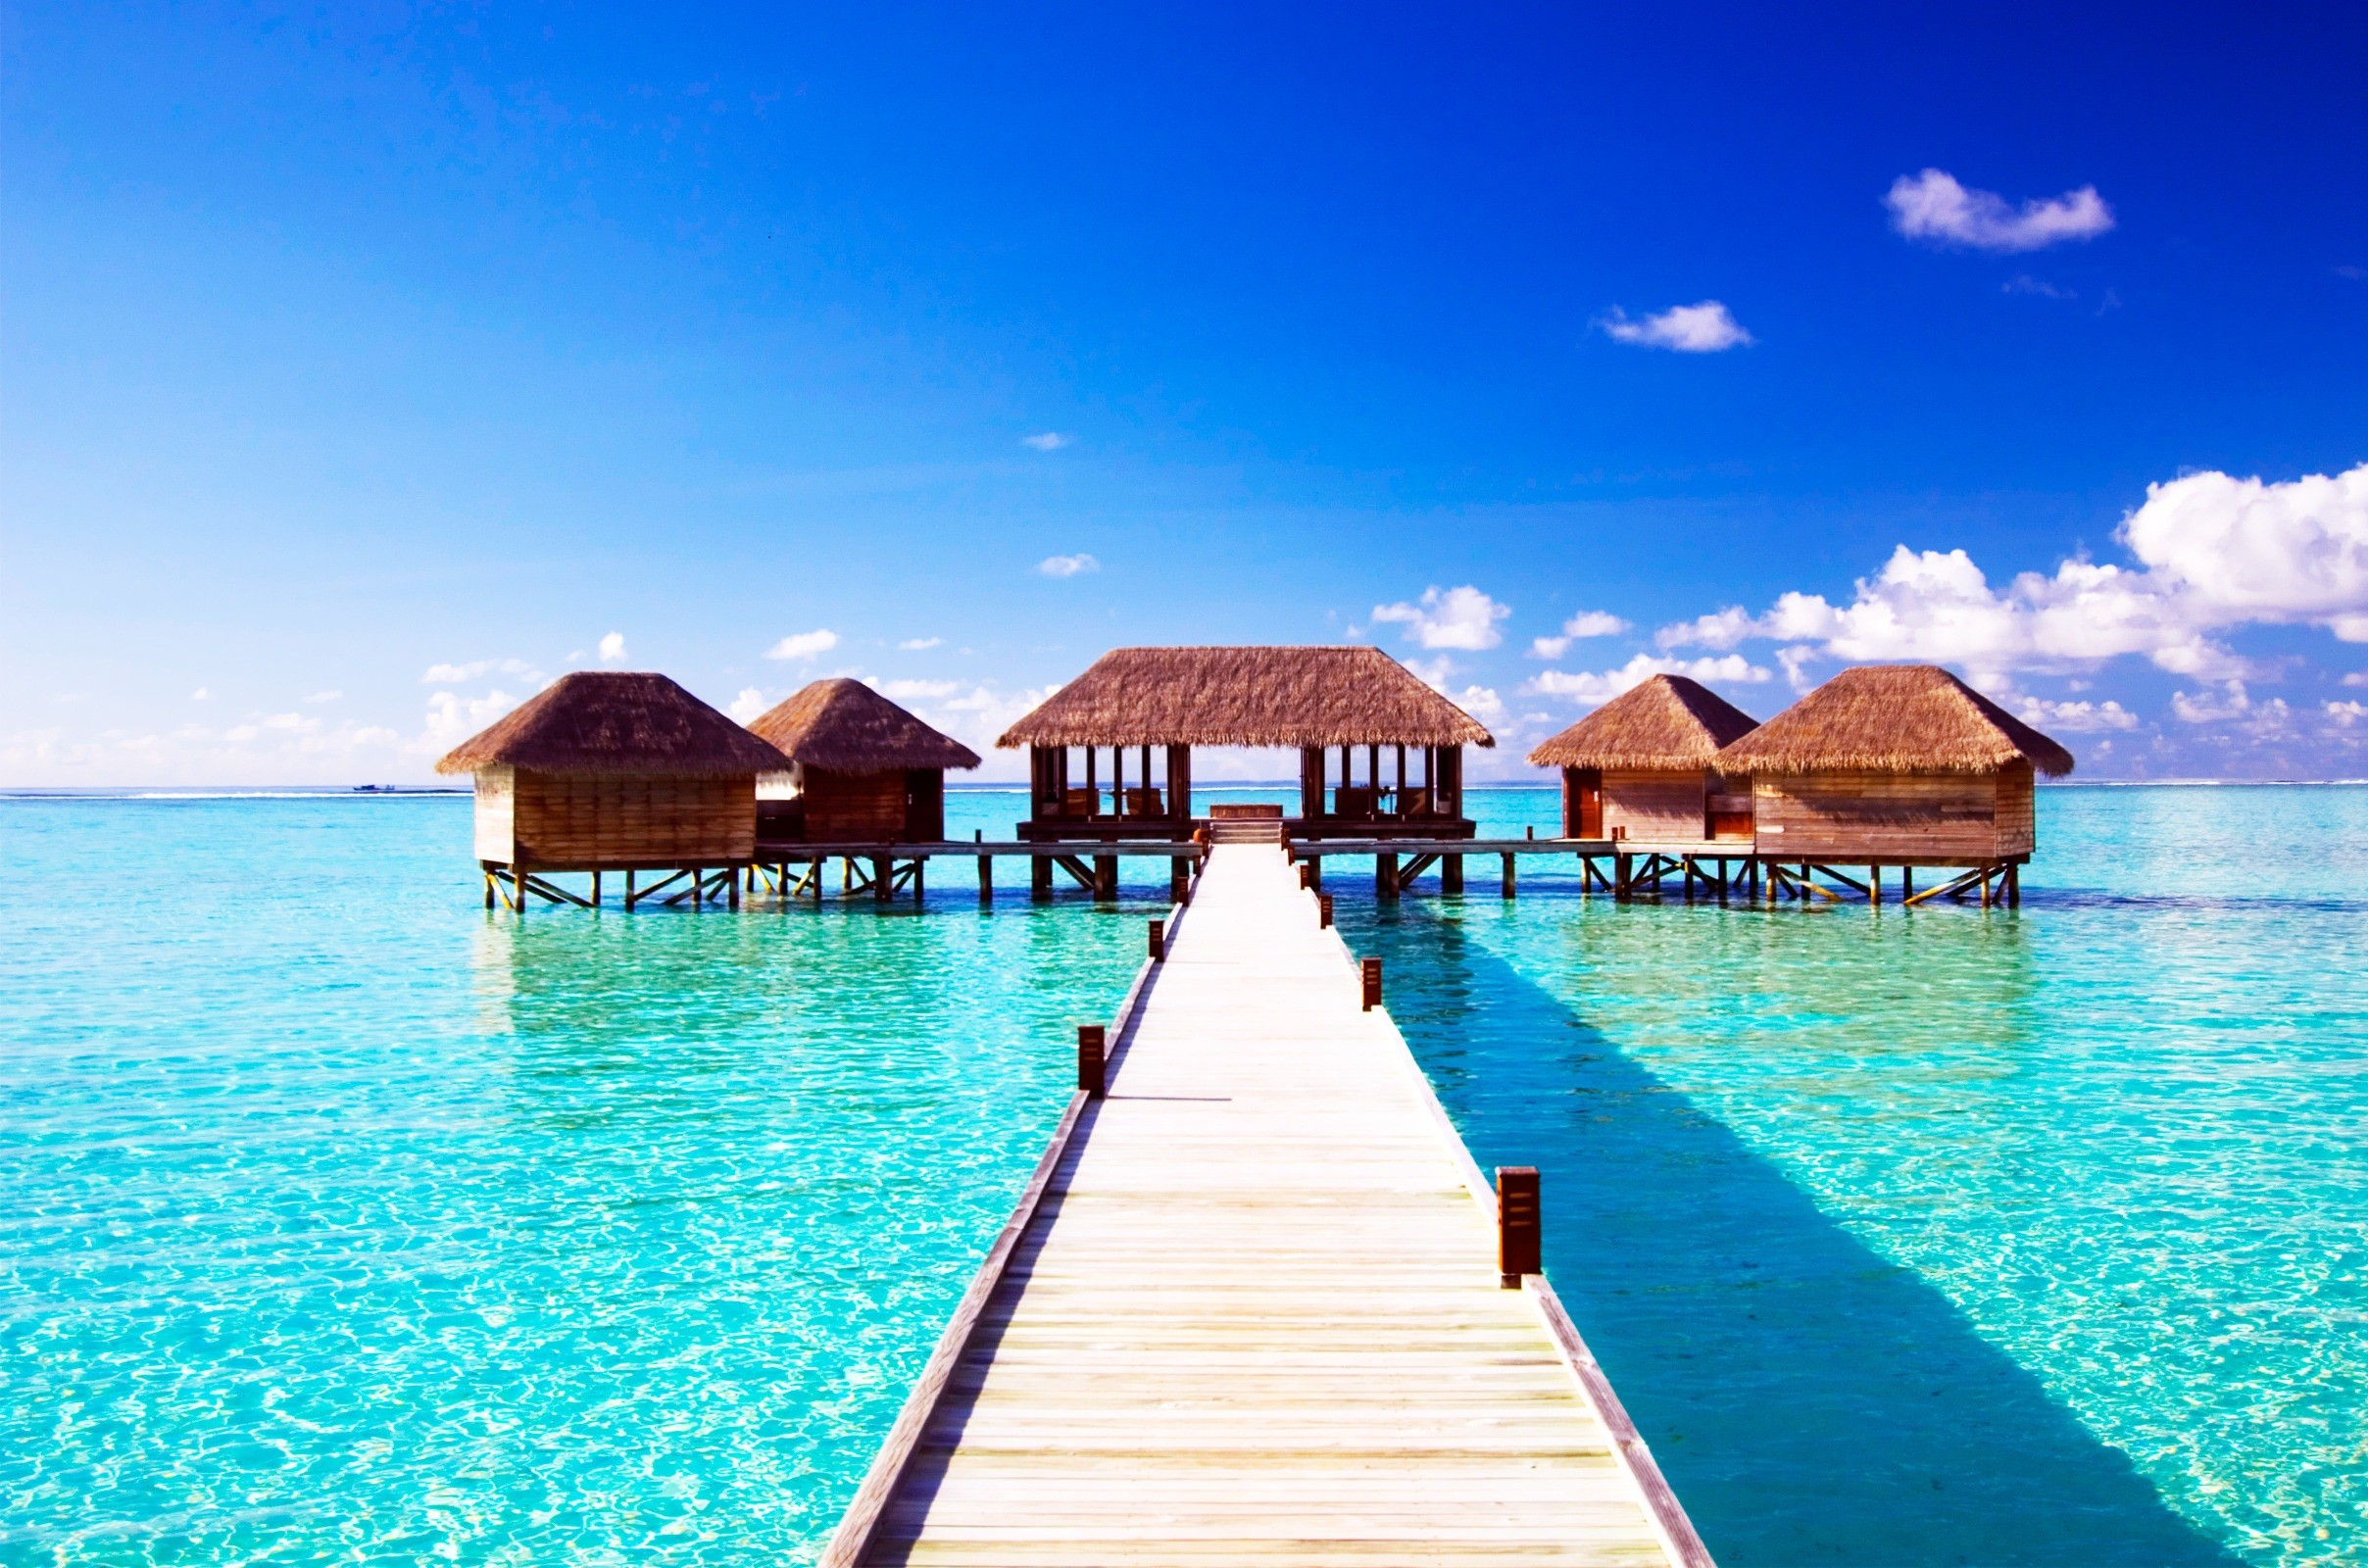 2416x1600 Pics Photos - Maldives Desktop Wallpapers Backgrounds And ..